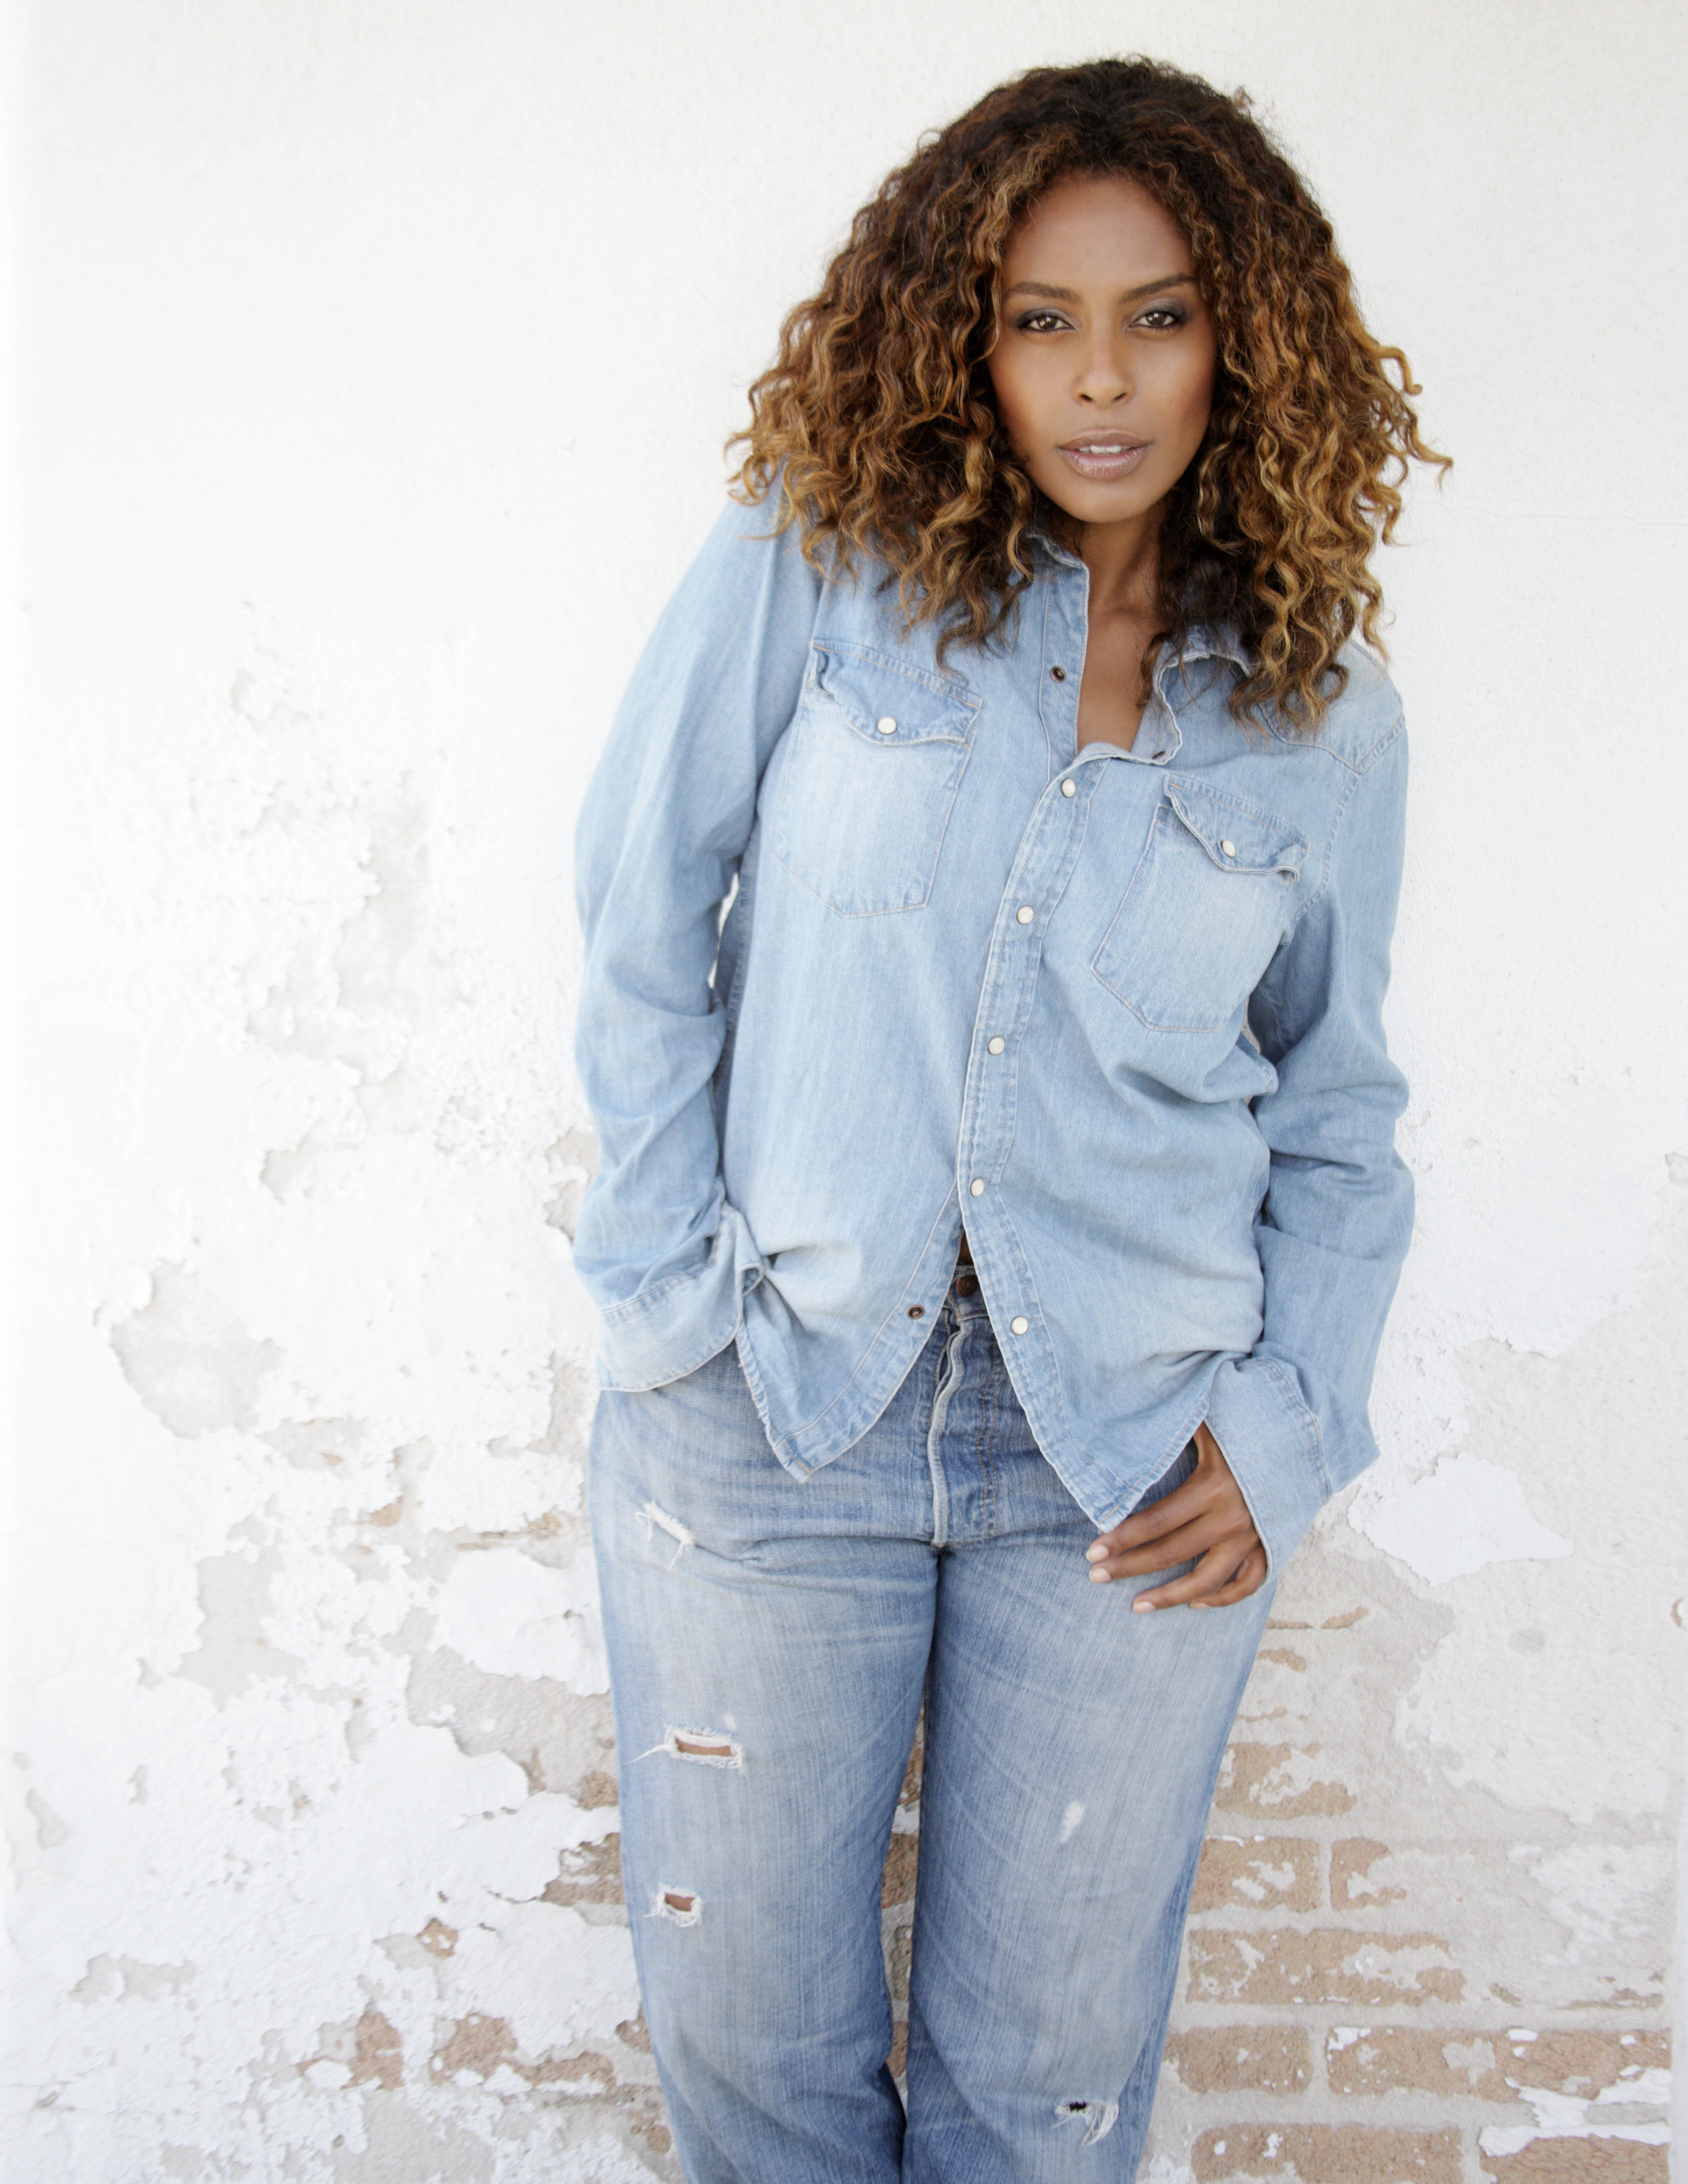 Denim on denim is so classic and chic - it never goes out of style.